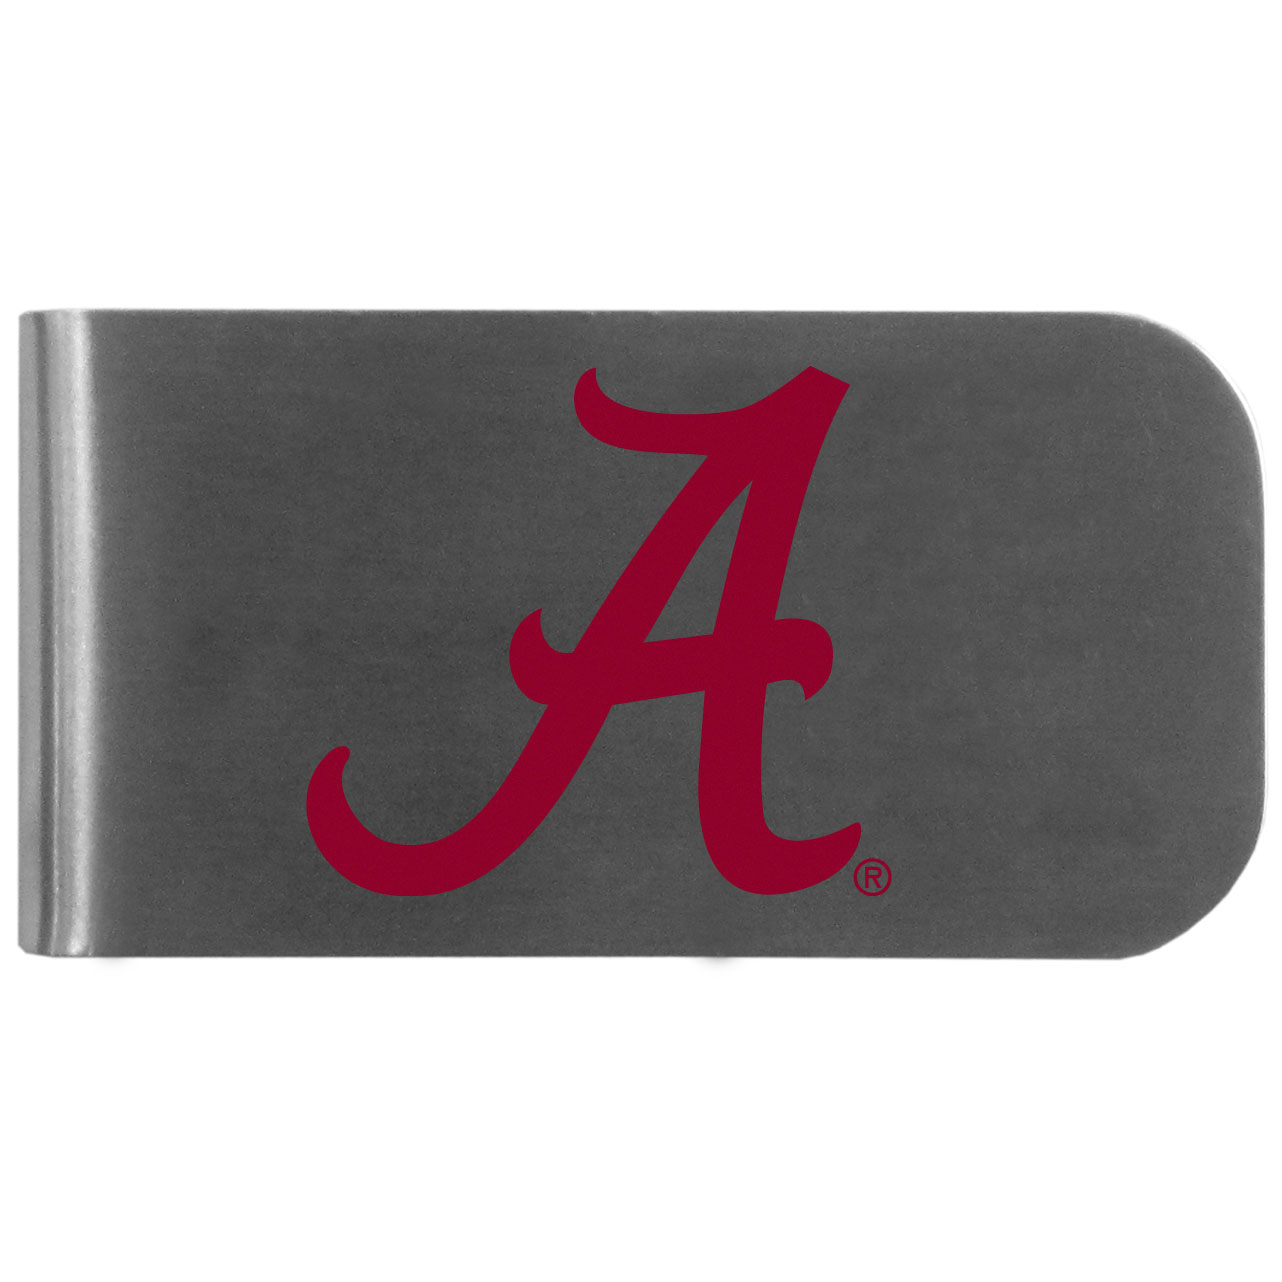 Alabama Crimson Tide Logo Bottle Opener Money Clip - This unique money clip features a classic, brushed-metal finish with a handy bottle opener feature on the back. The clip has the Alabama Crimson Tide logo expertly printed on the front of the clip.